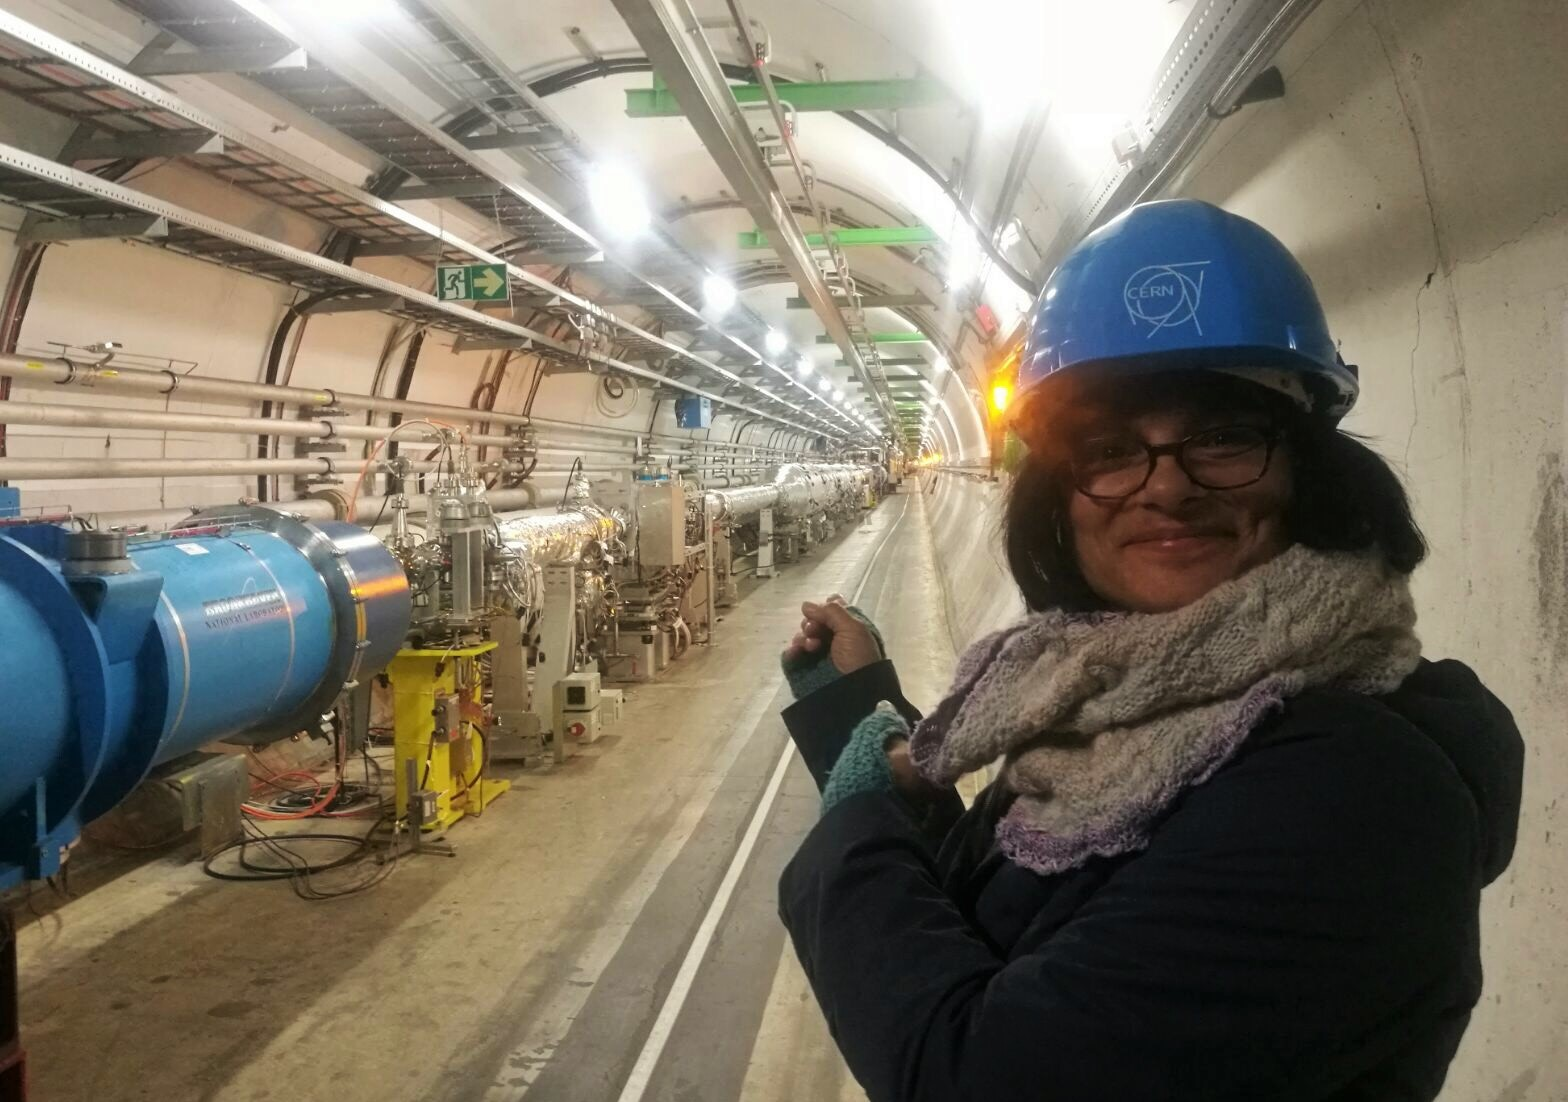 The_actual_LHC_tunnel_(2).jpg